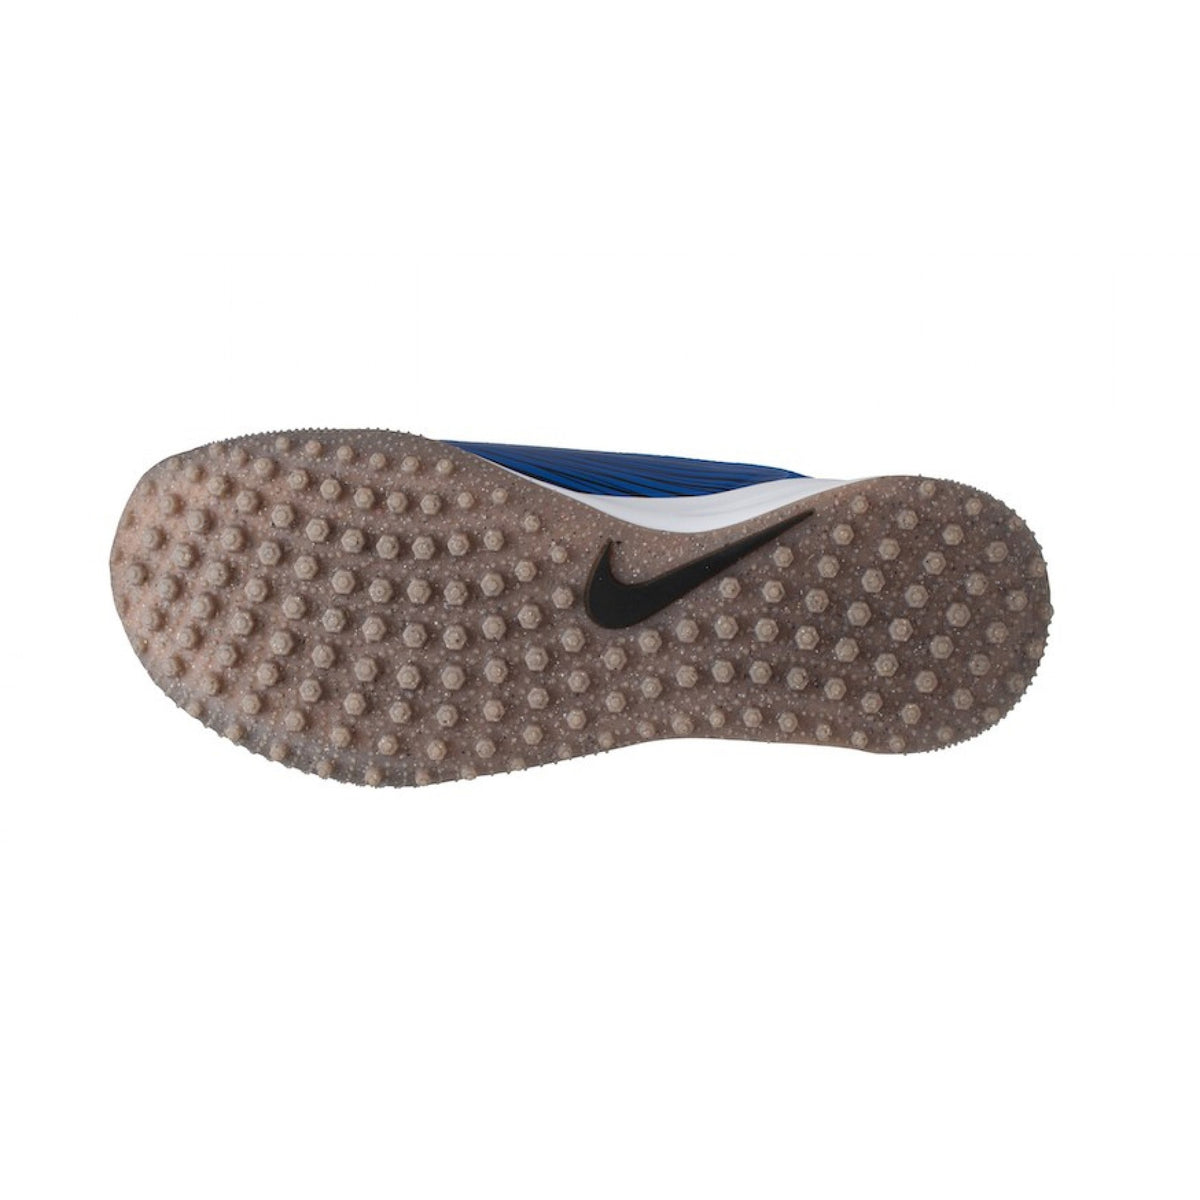 Nike Vapor Drive (Game Royal)